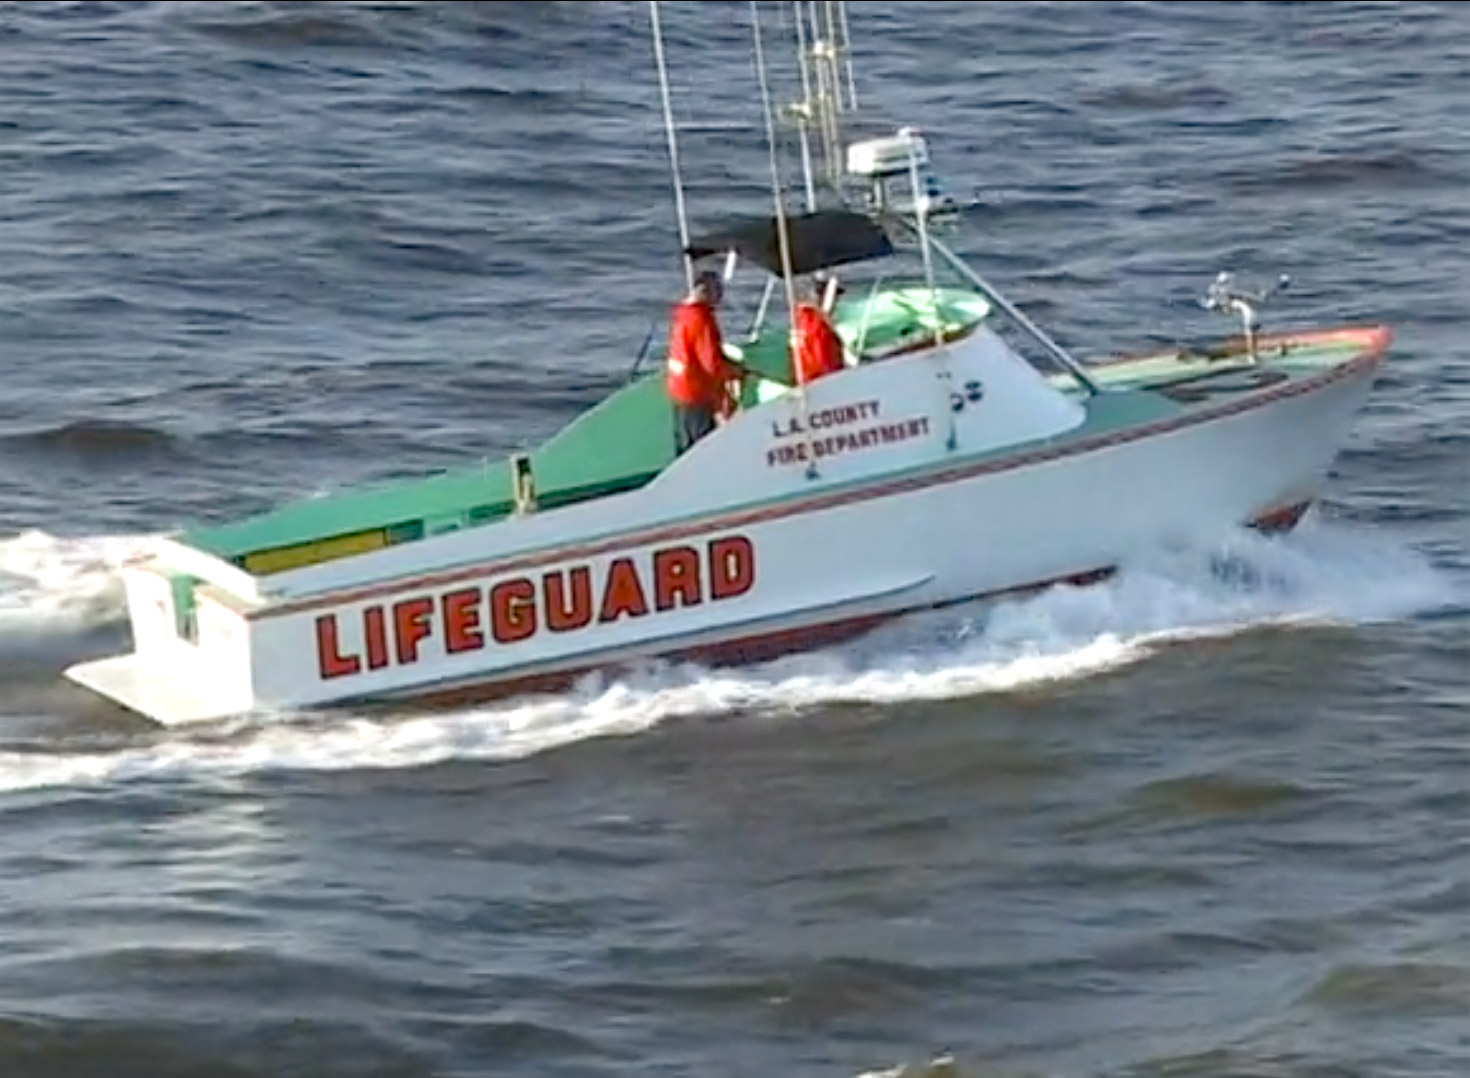 Image of a lifeguard boat in the water.